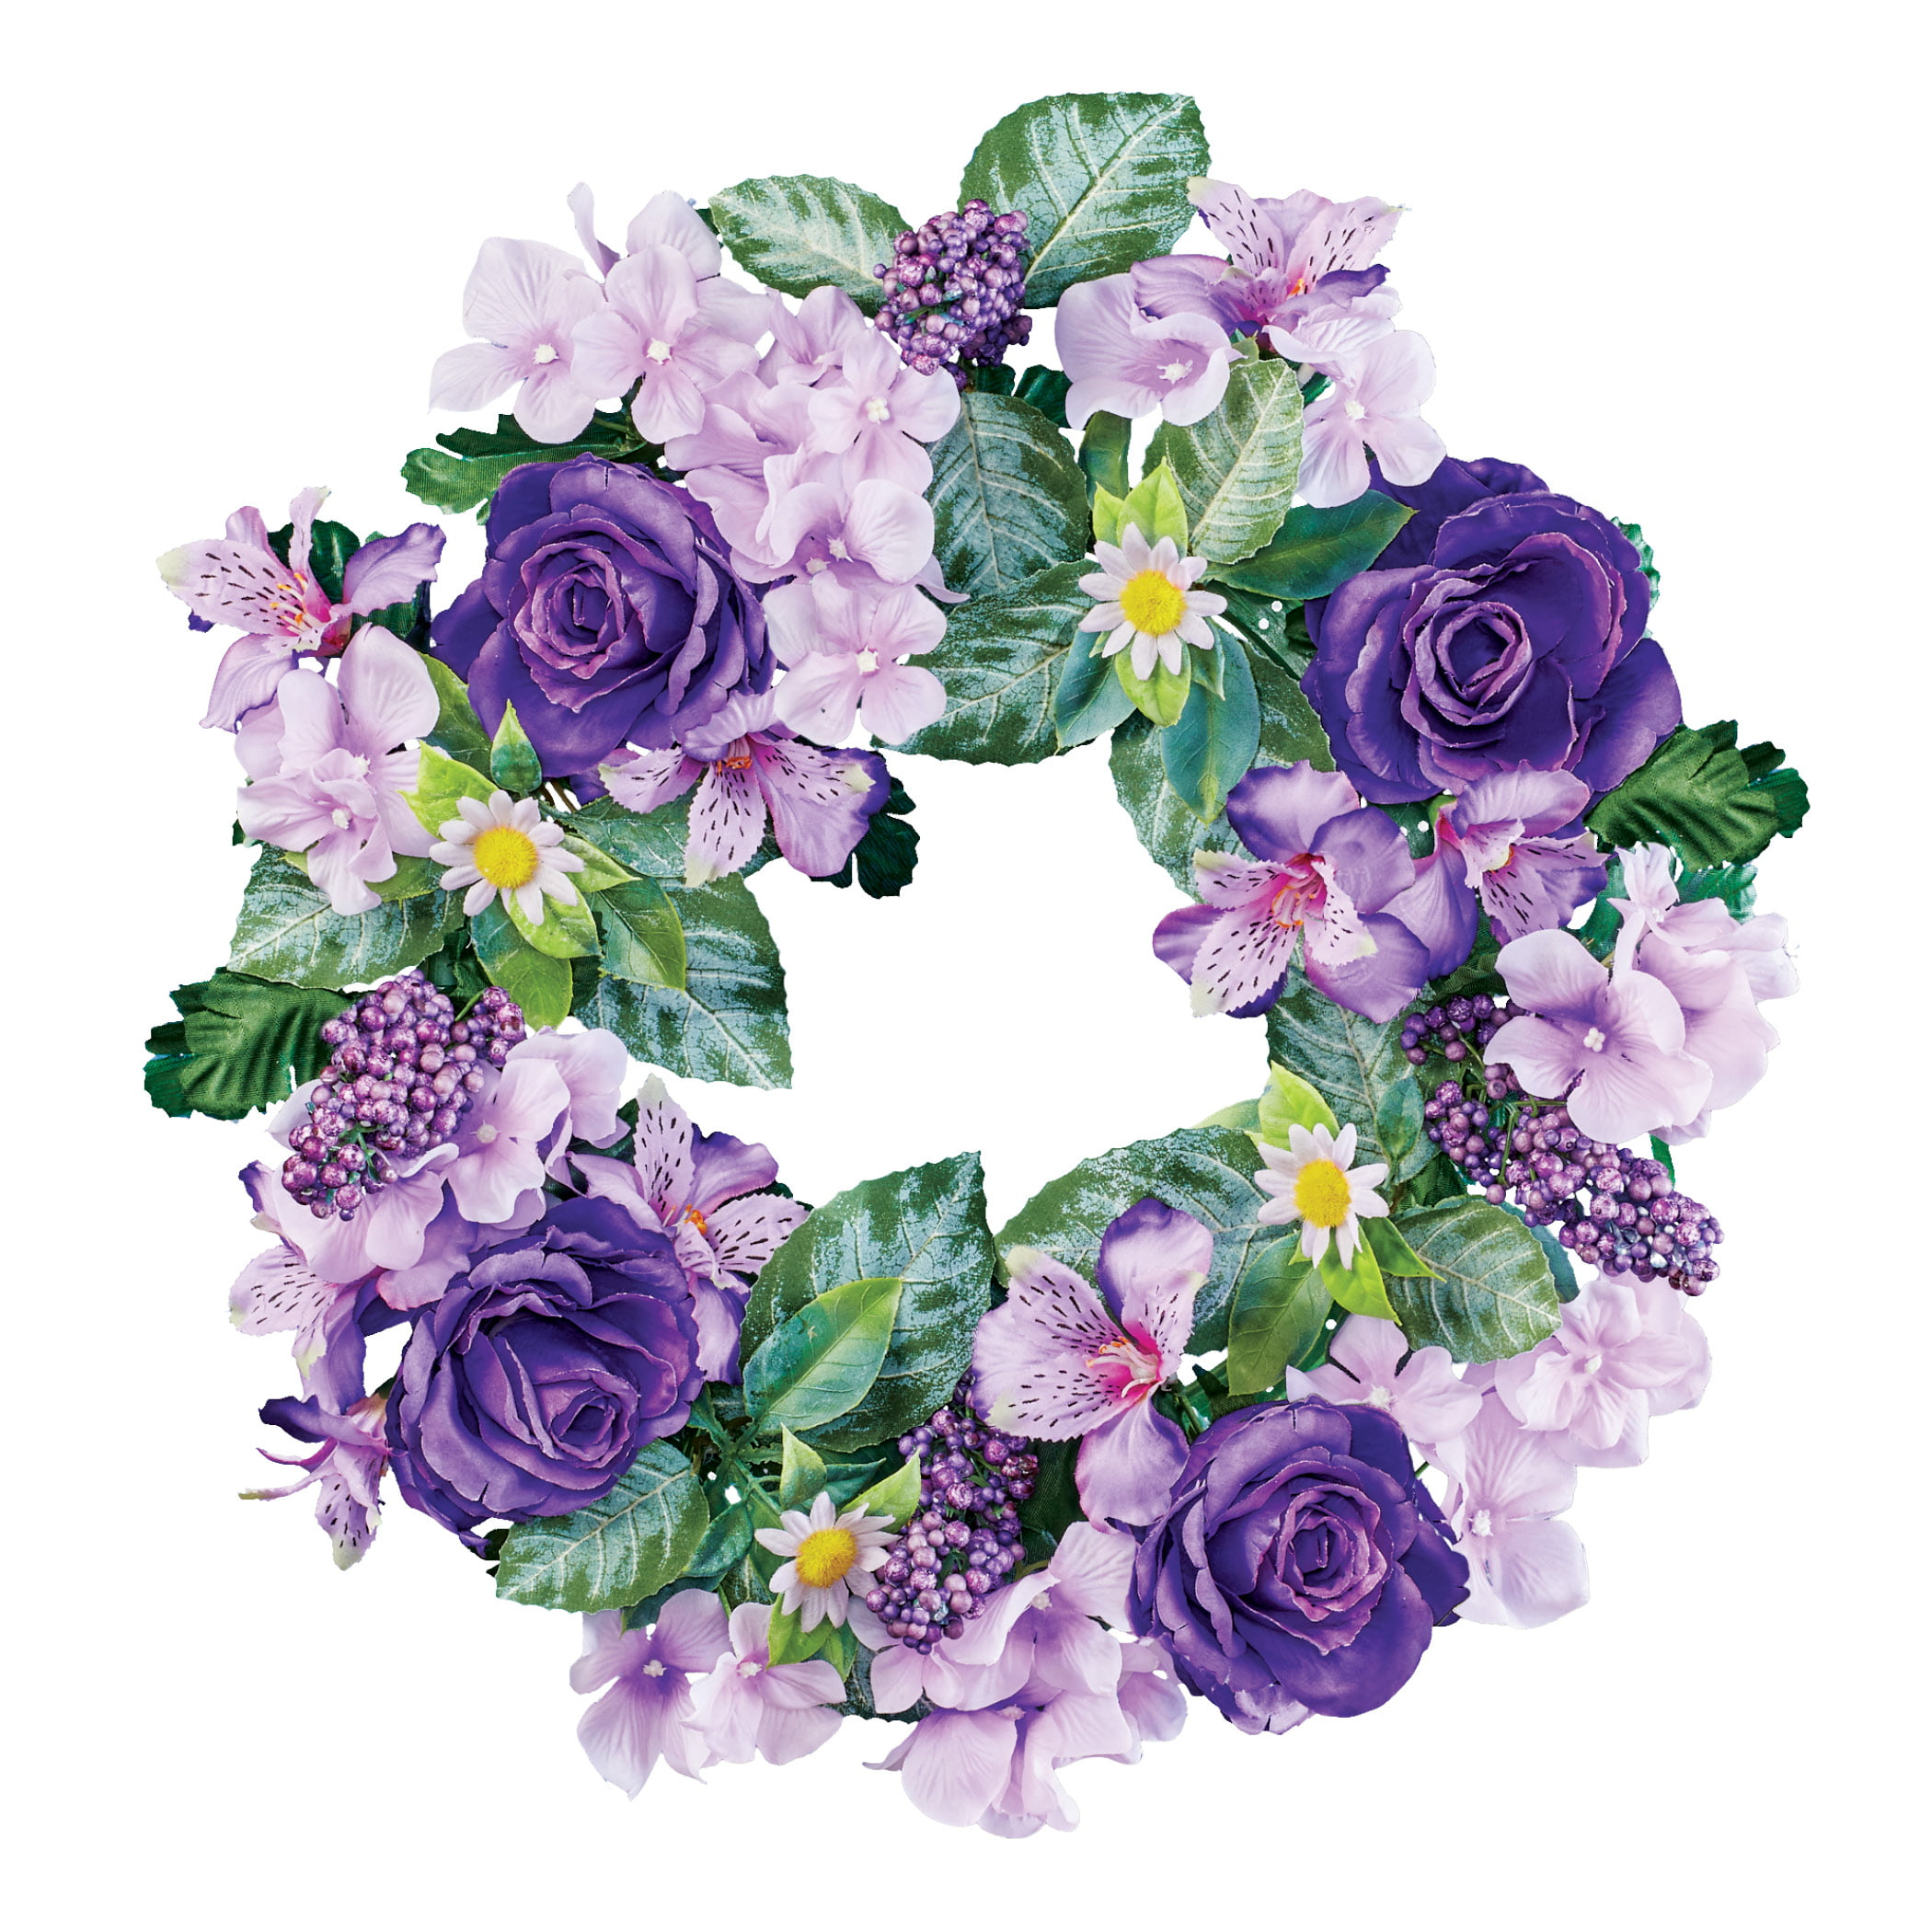 Beautiful Mixed Purple Flowers Floral Wreath Hang On Front Door Wall Any Room In Home Hook On Back For Easy Hanging 18 Dia Polyester Pp Plastic Wire Walmart Com Walmart Com